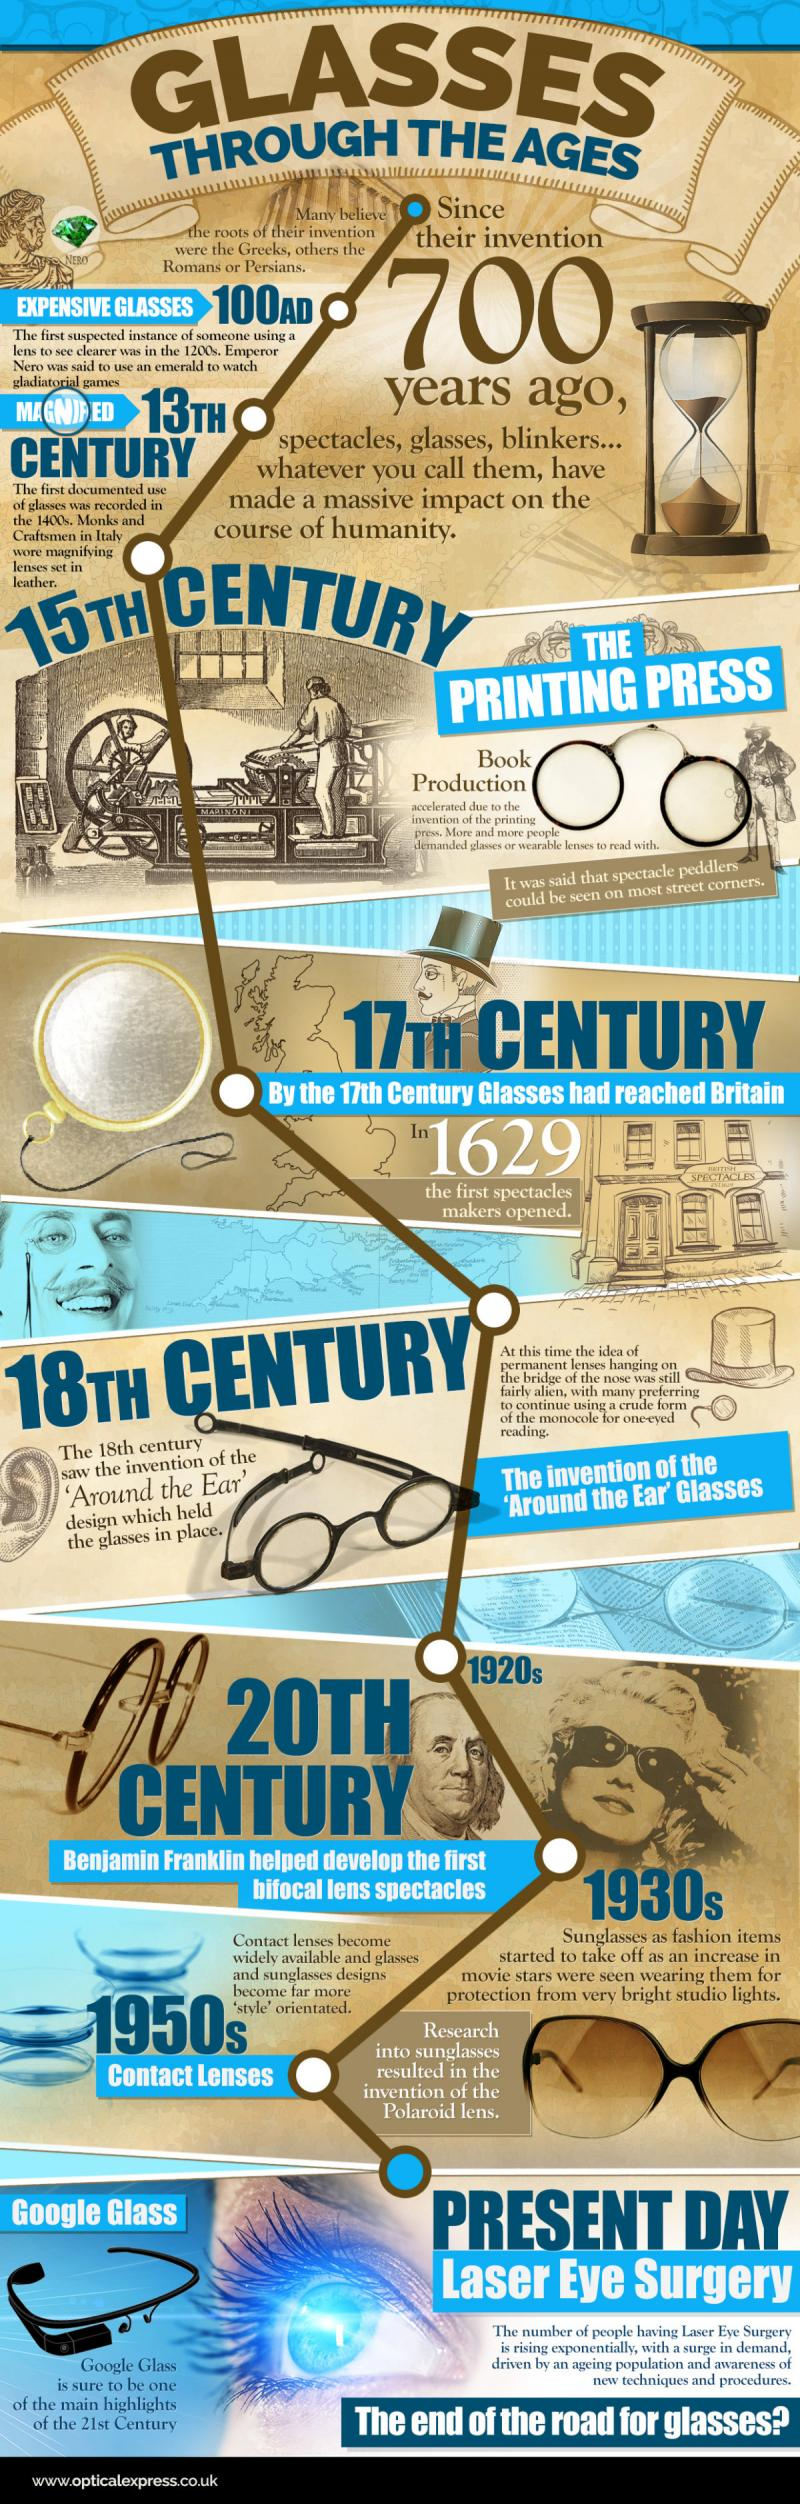 Glasses Through the Ages #Google #Infographic